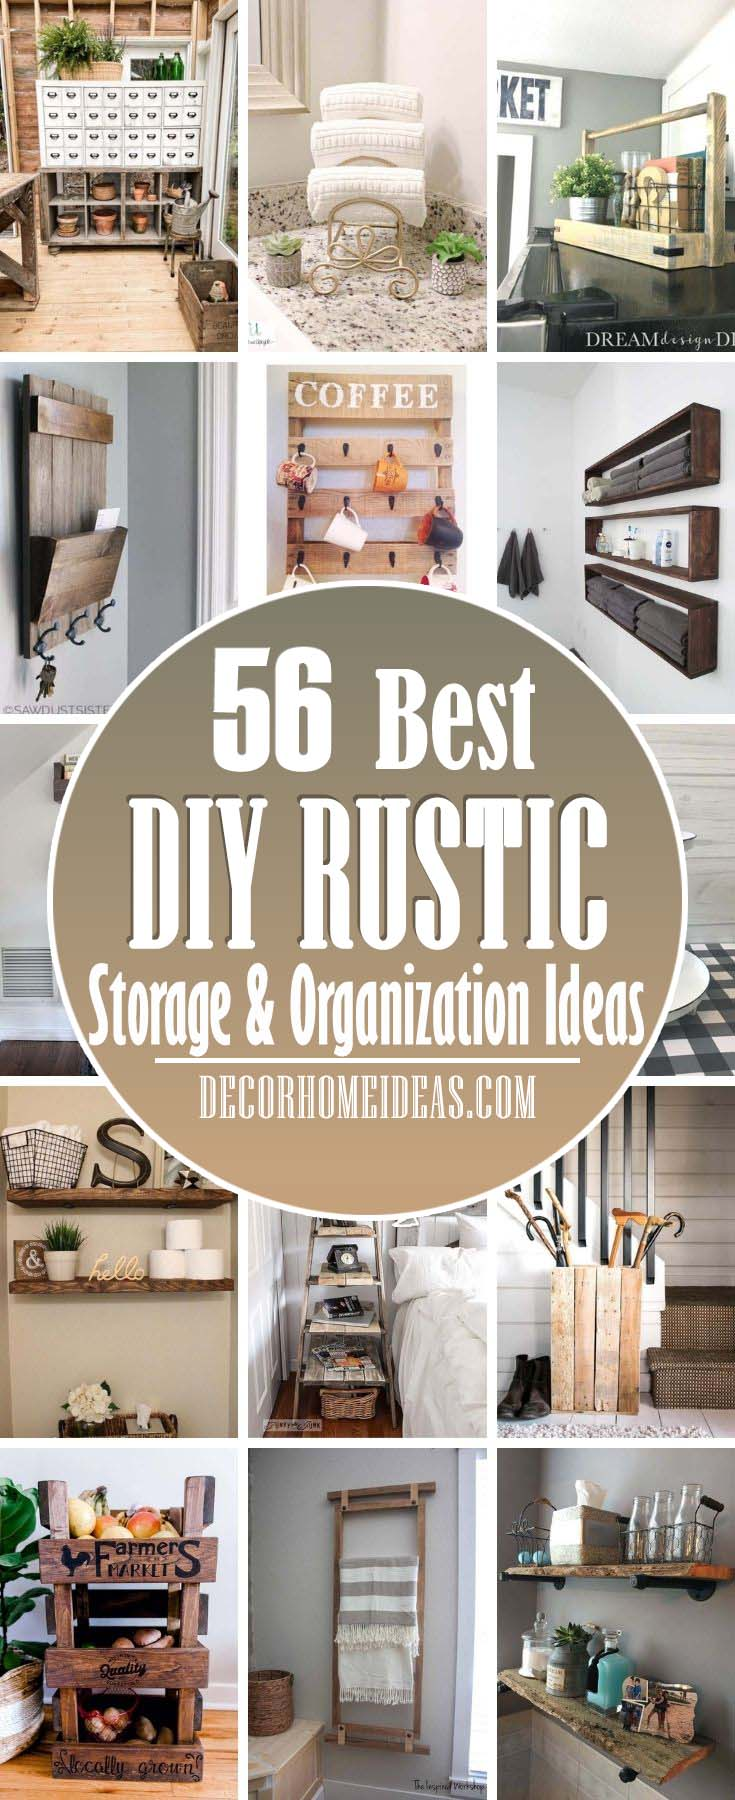 Best DIY Rustic Storage And Organization Ideas. These DIY rustic storage and organization ideas are perfect for decluttering your home. Each one adds a touch of rustic charm to the room and keeps everything in place. #decorhomeideas